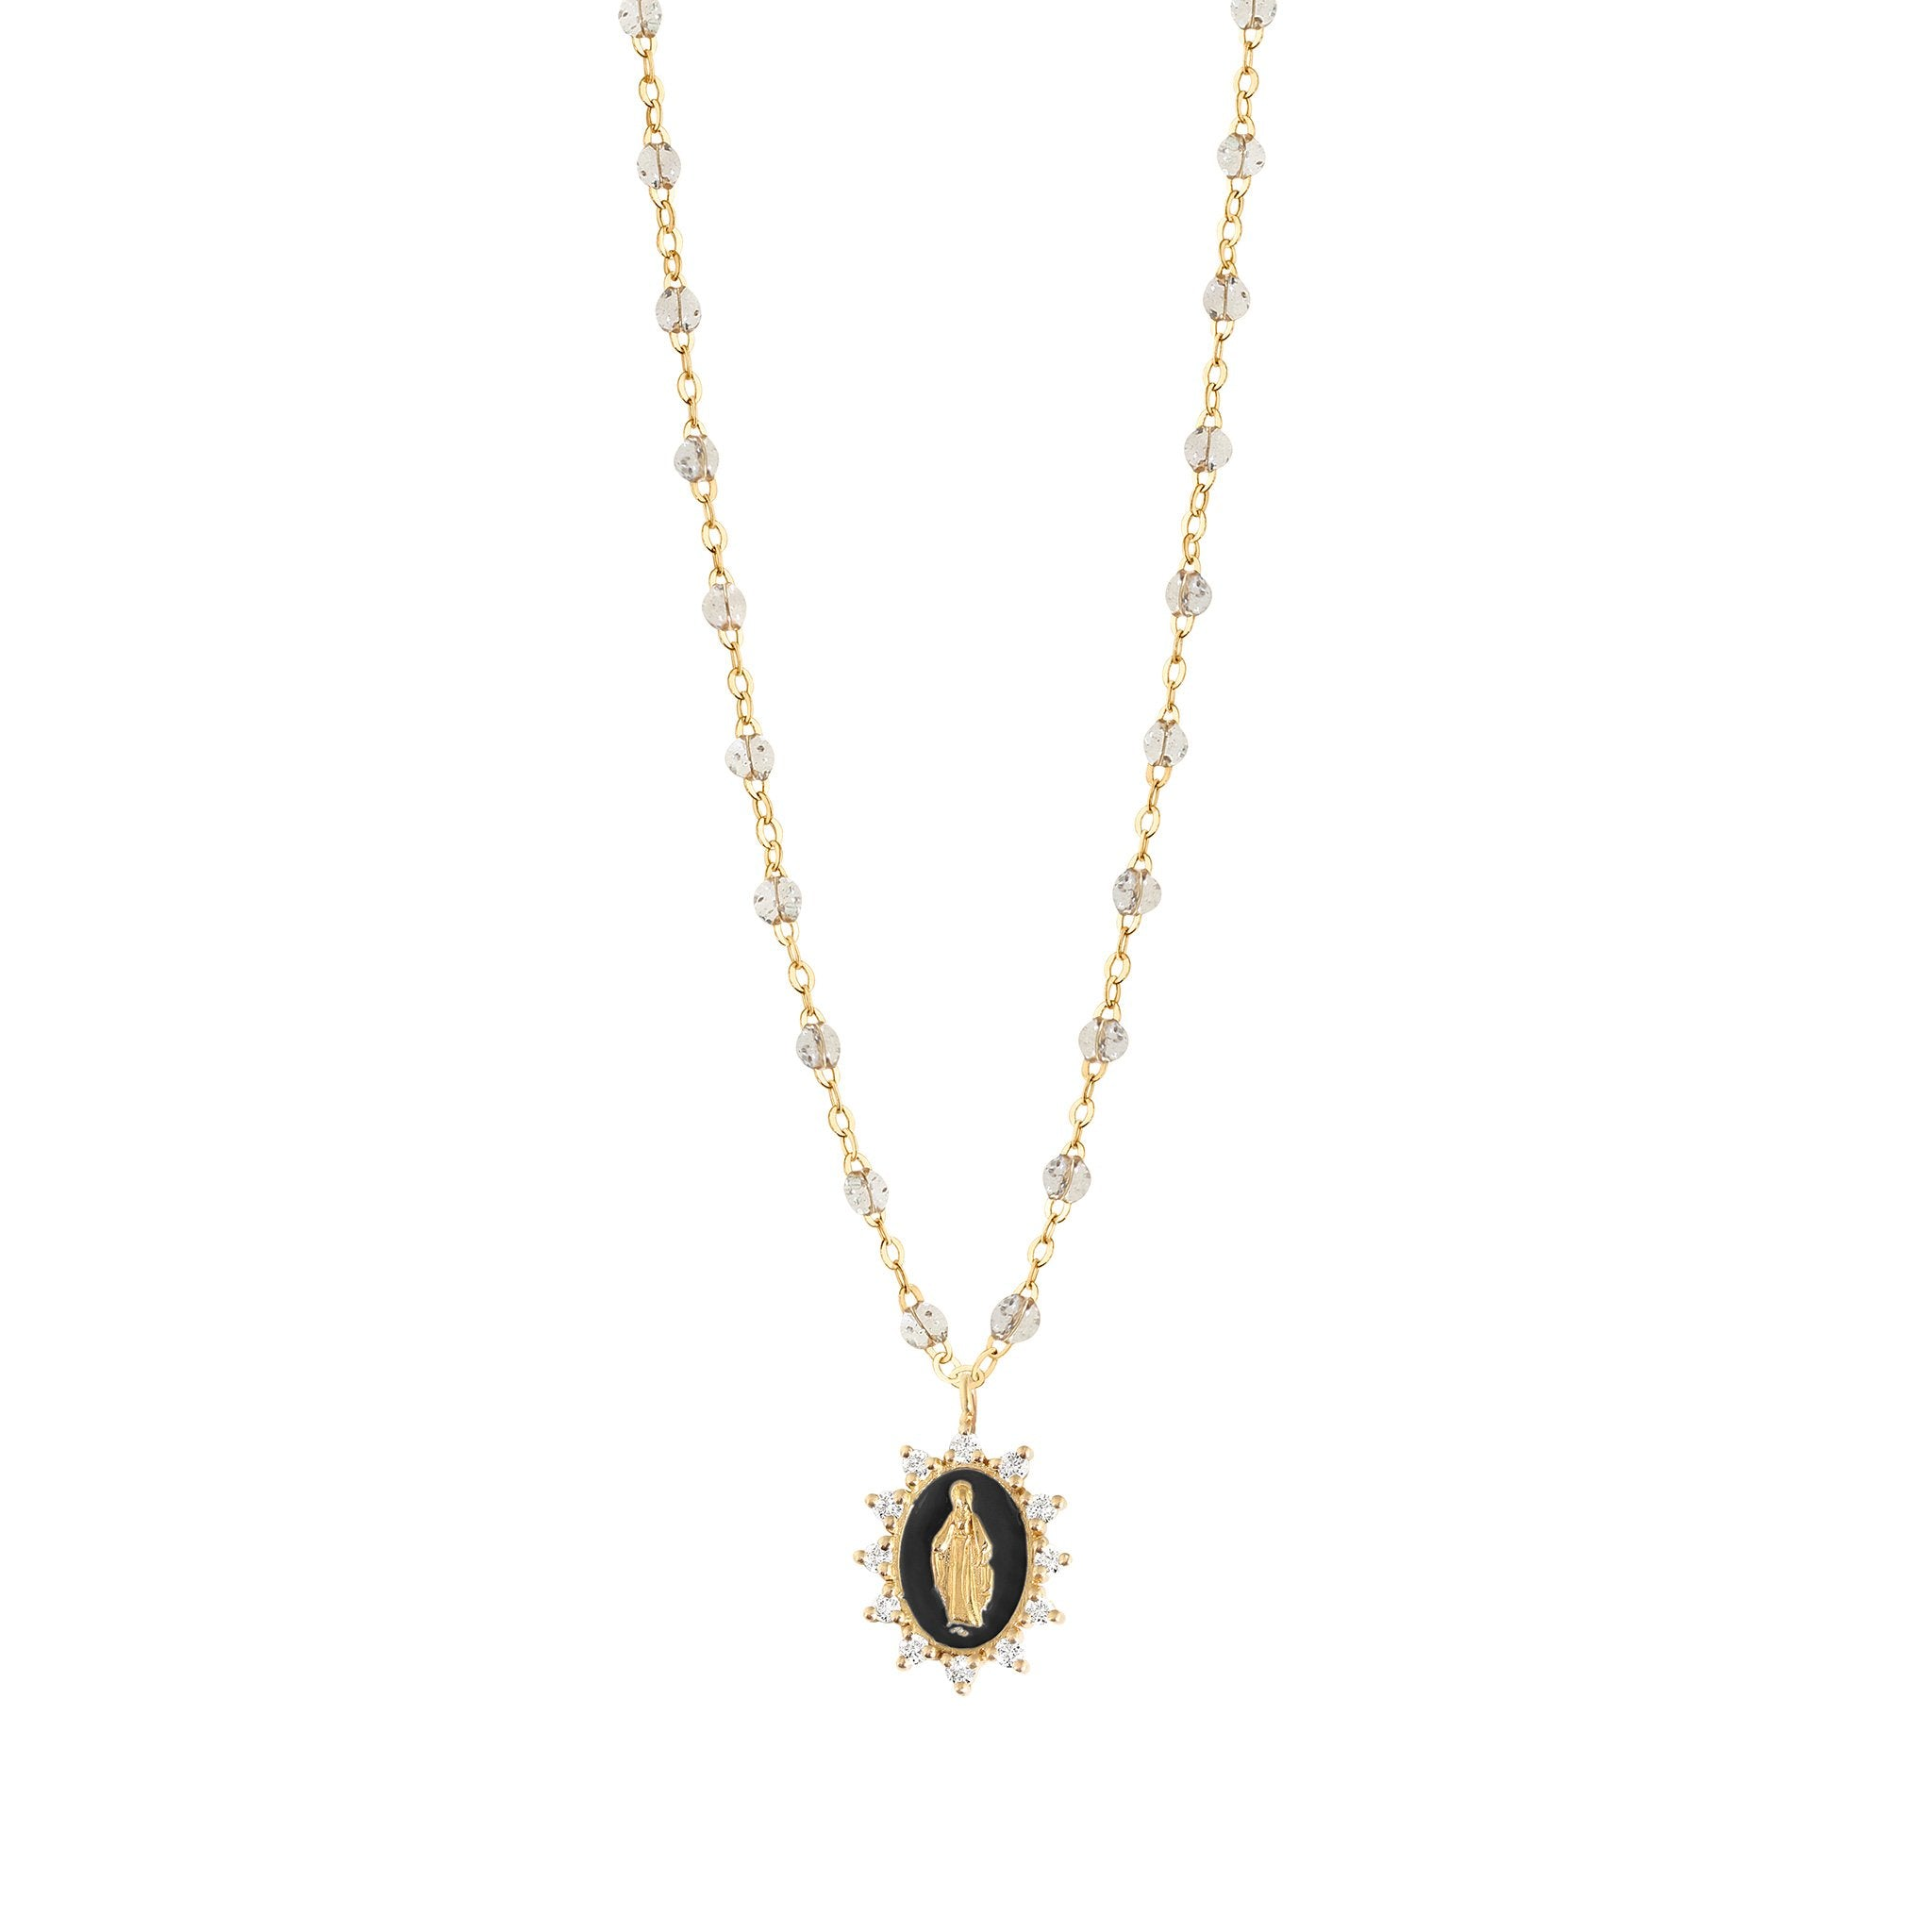 Gigi Clozeau - Petite Madone Supreme Sparkle Black diamonds necklace, Yellow Gold, 19.7